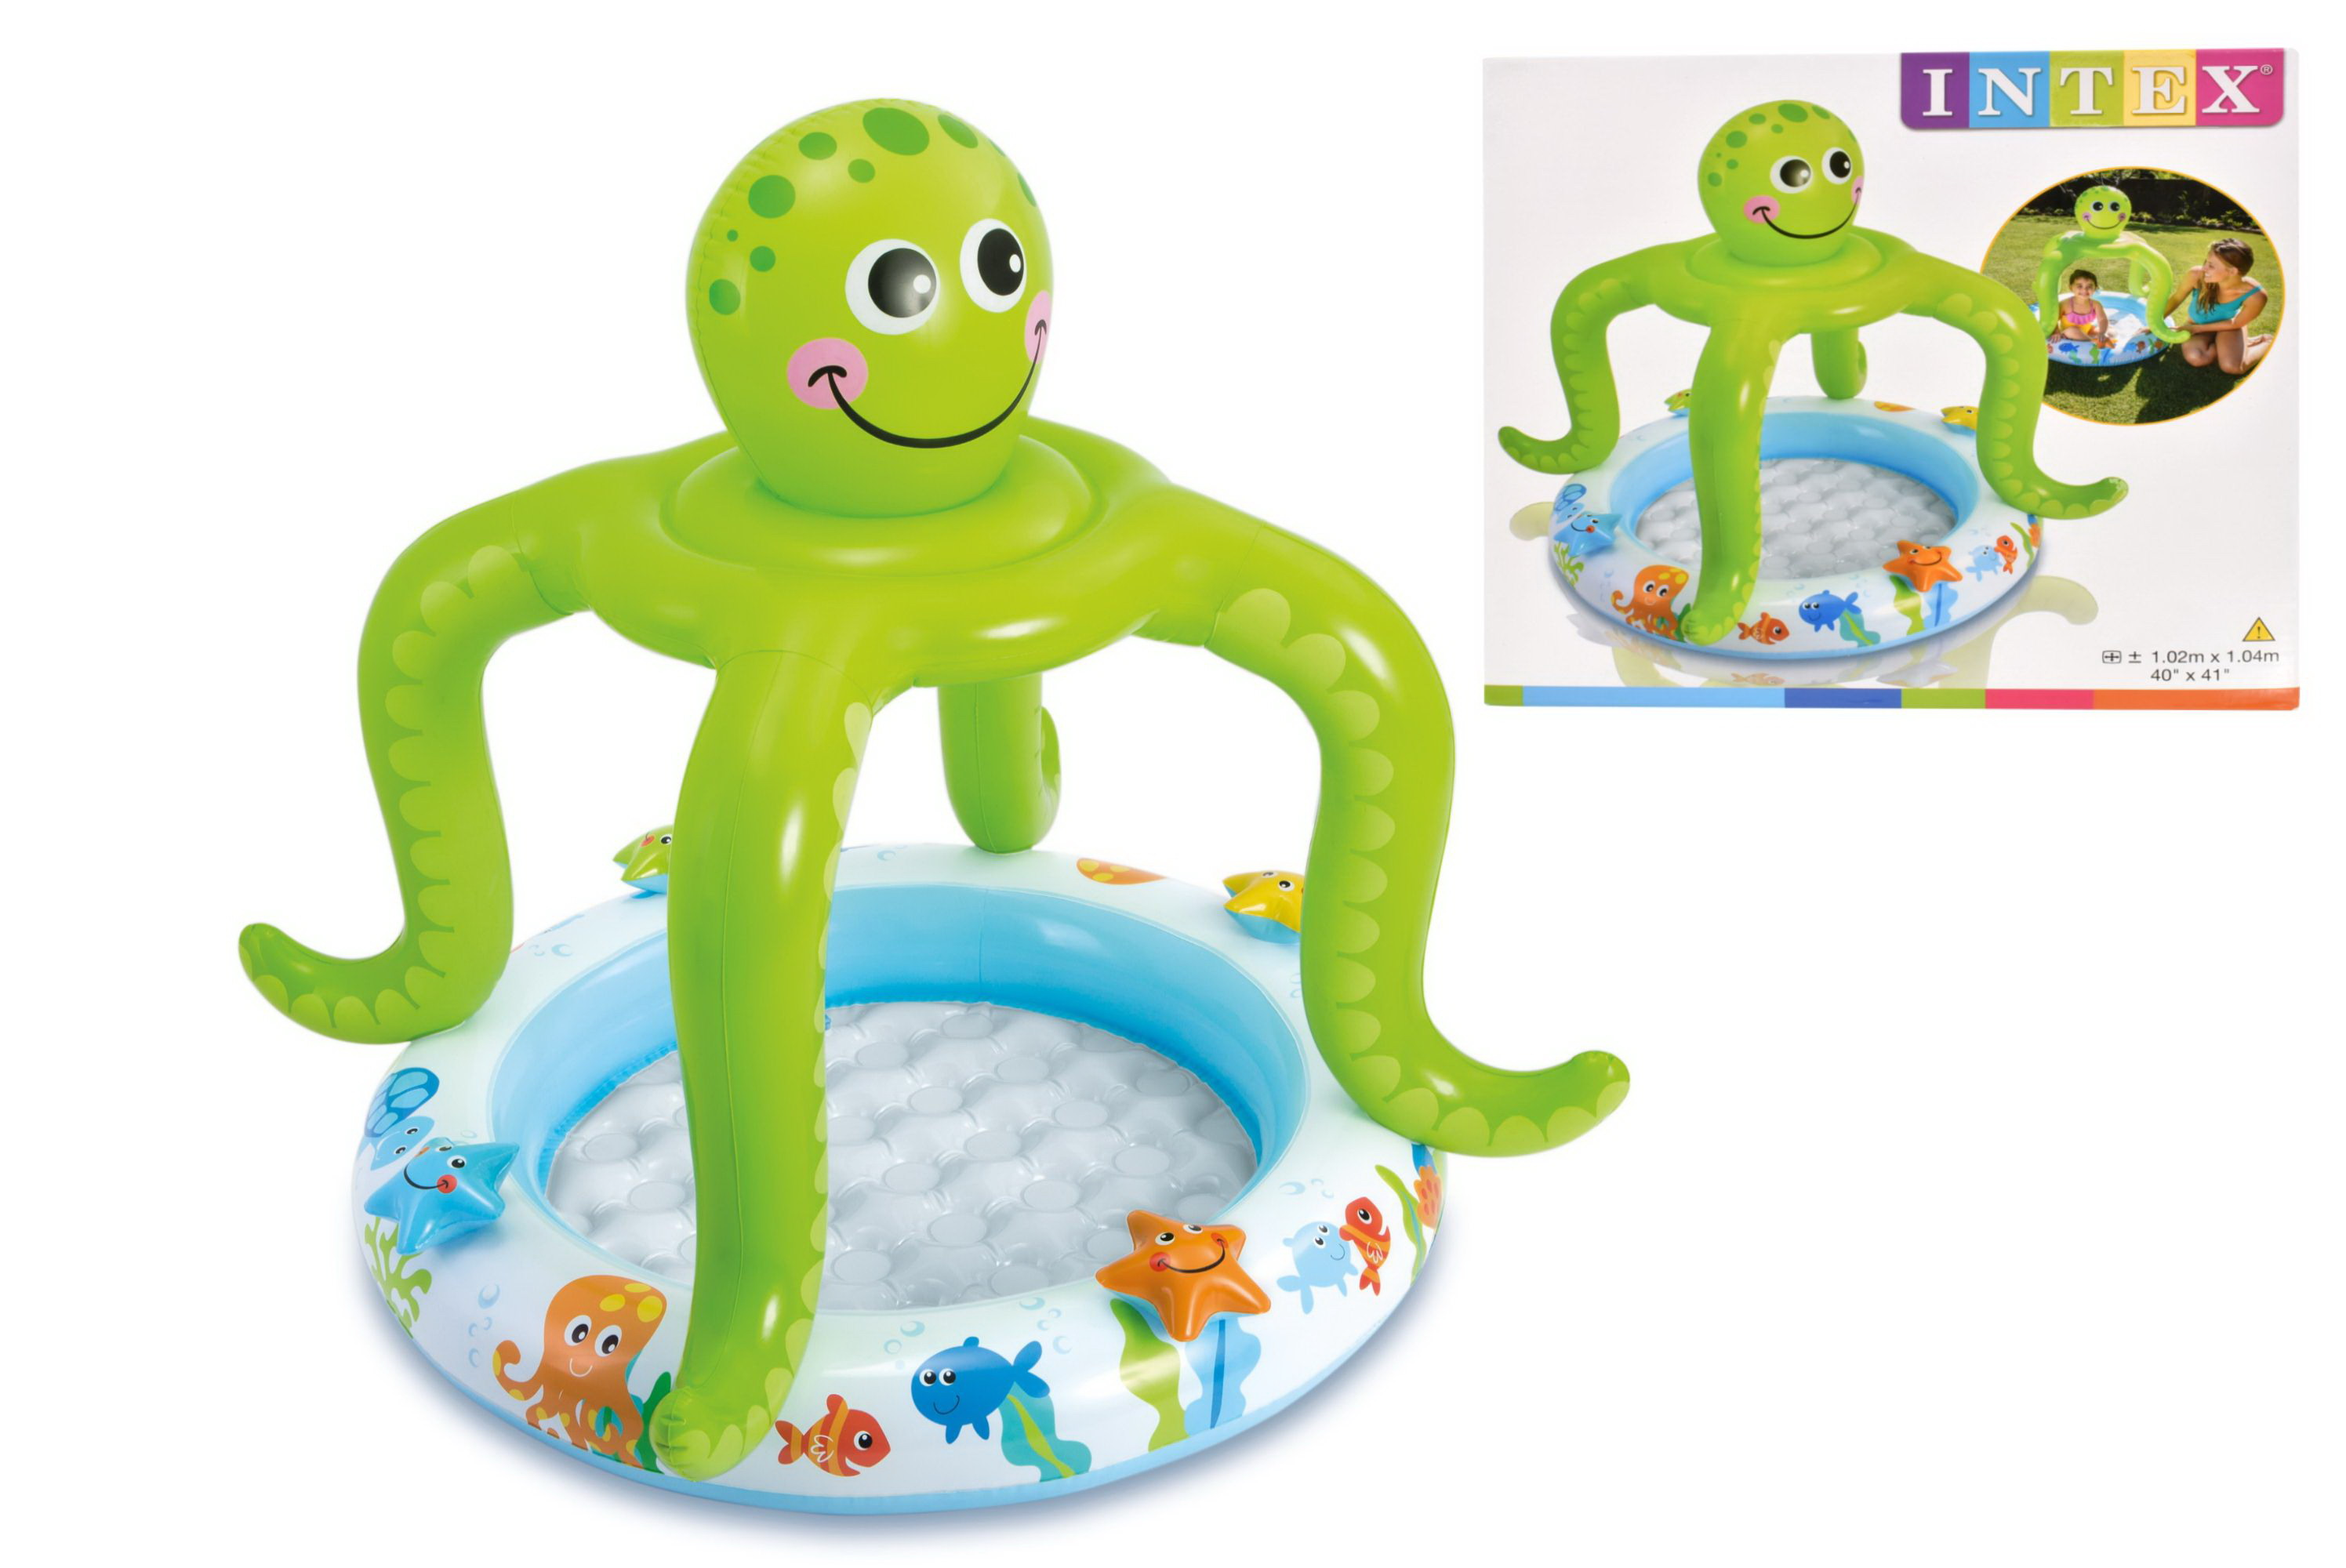 "Smiling Octopus Shade Baby Pool 40"" x 41"""